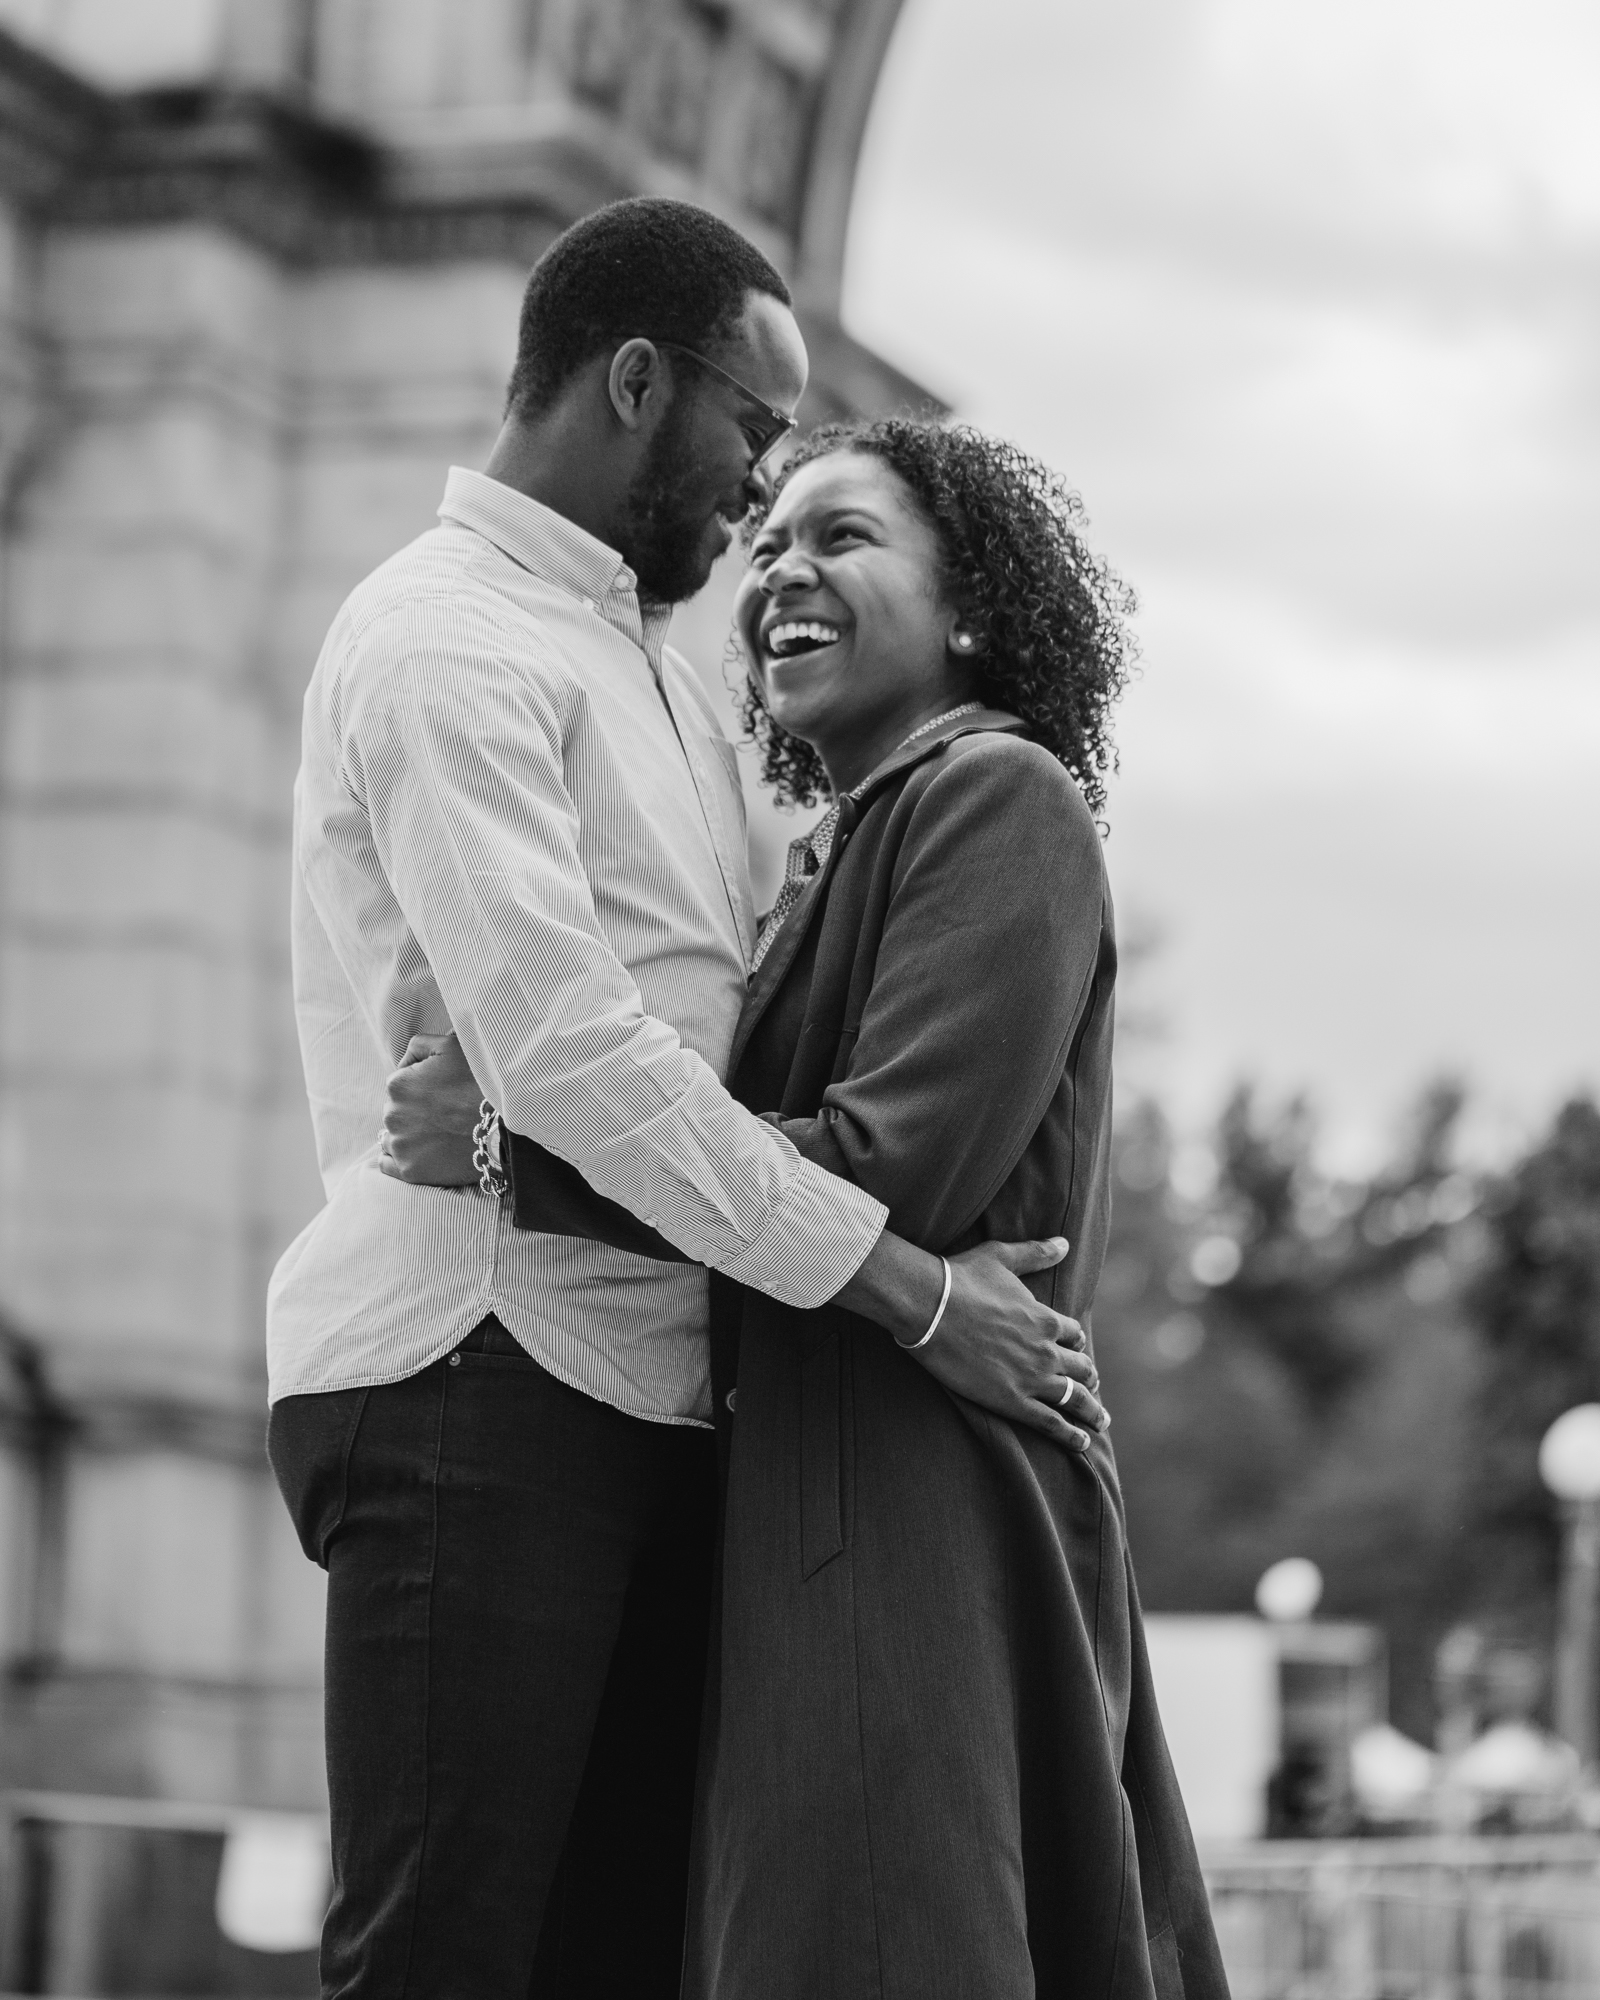 Grand army plaza engagement photos